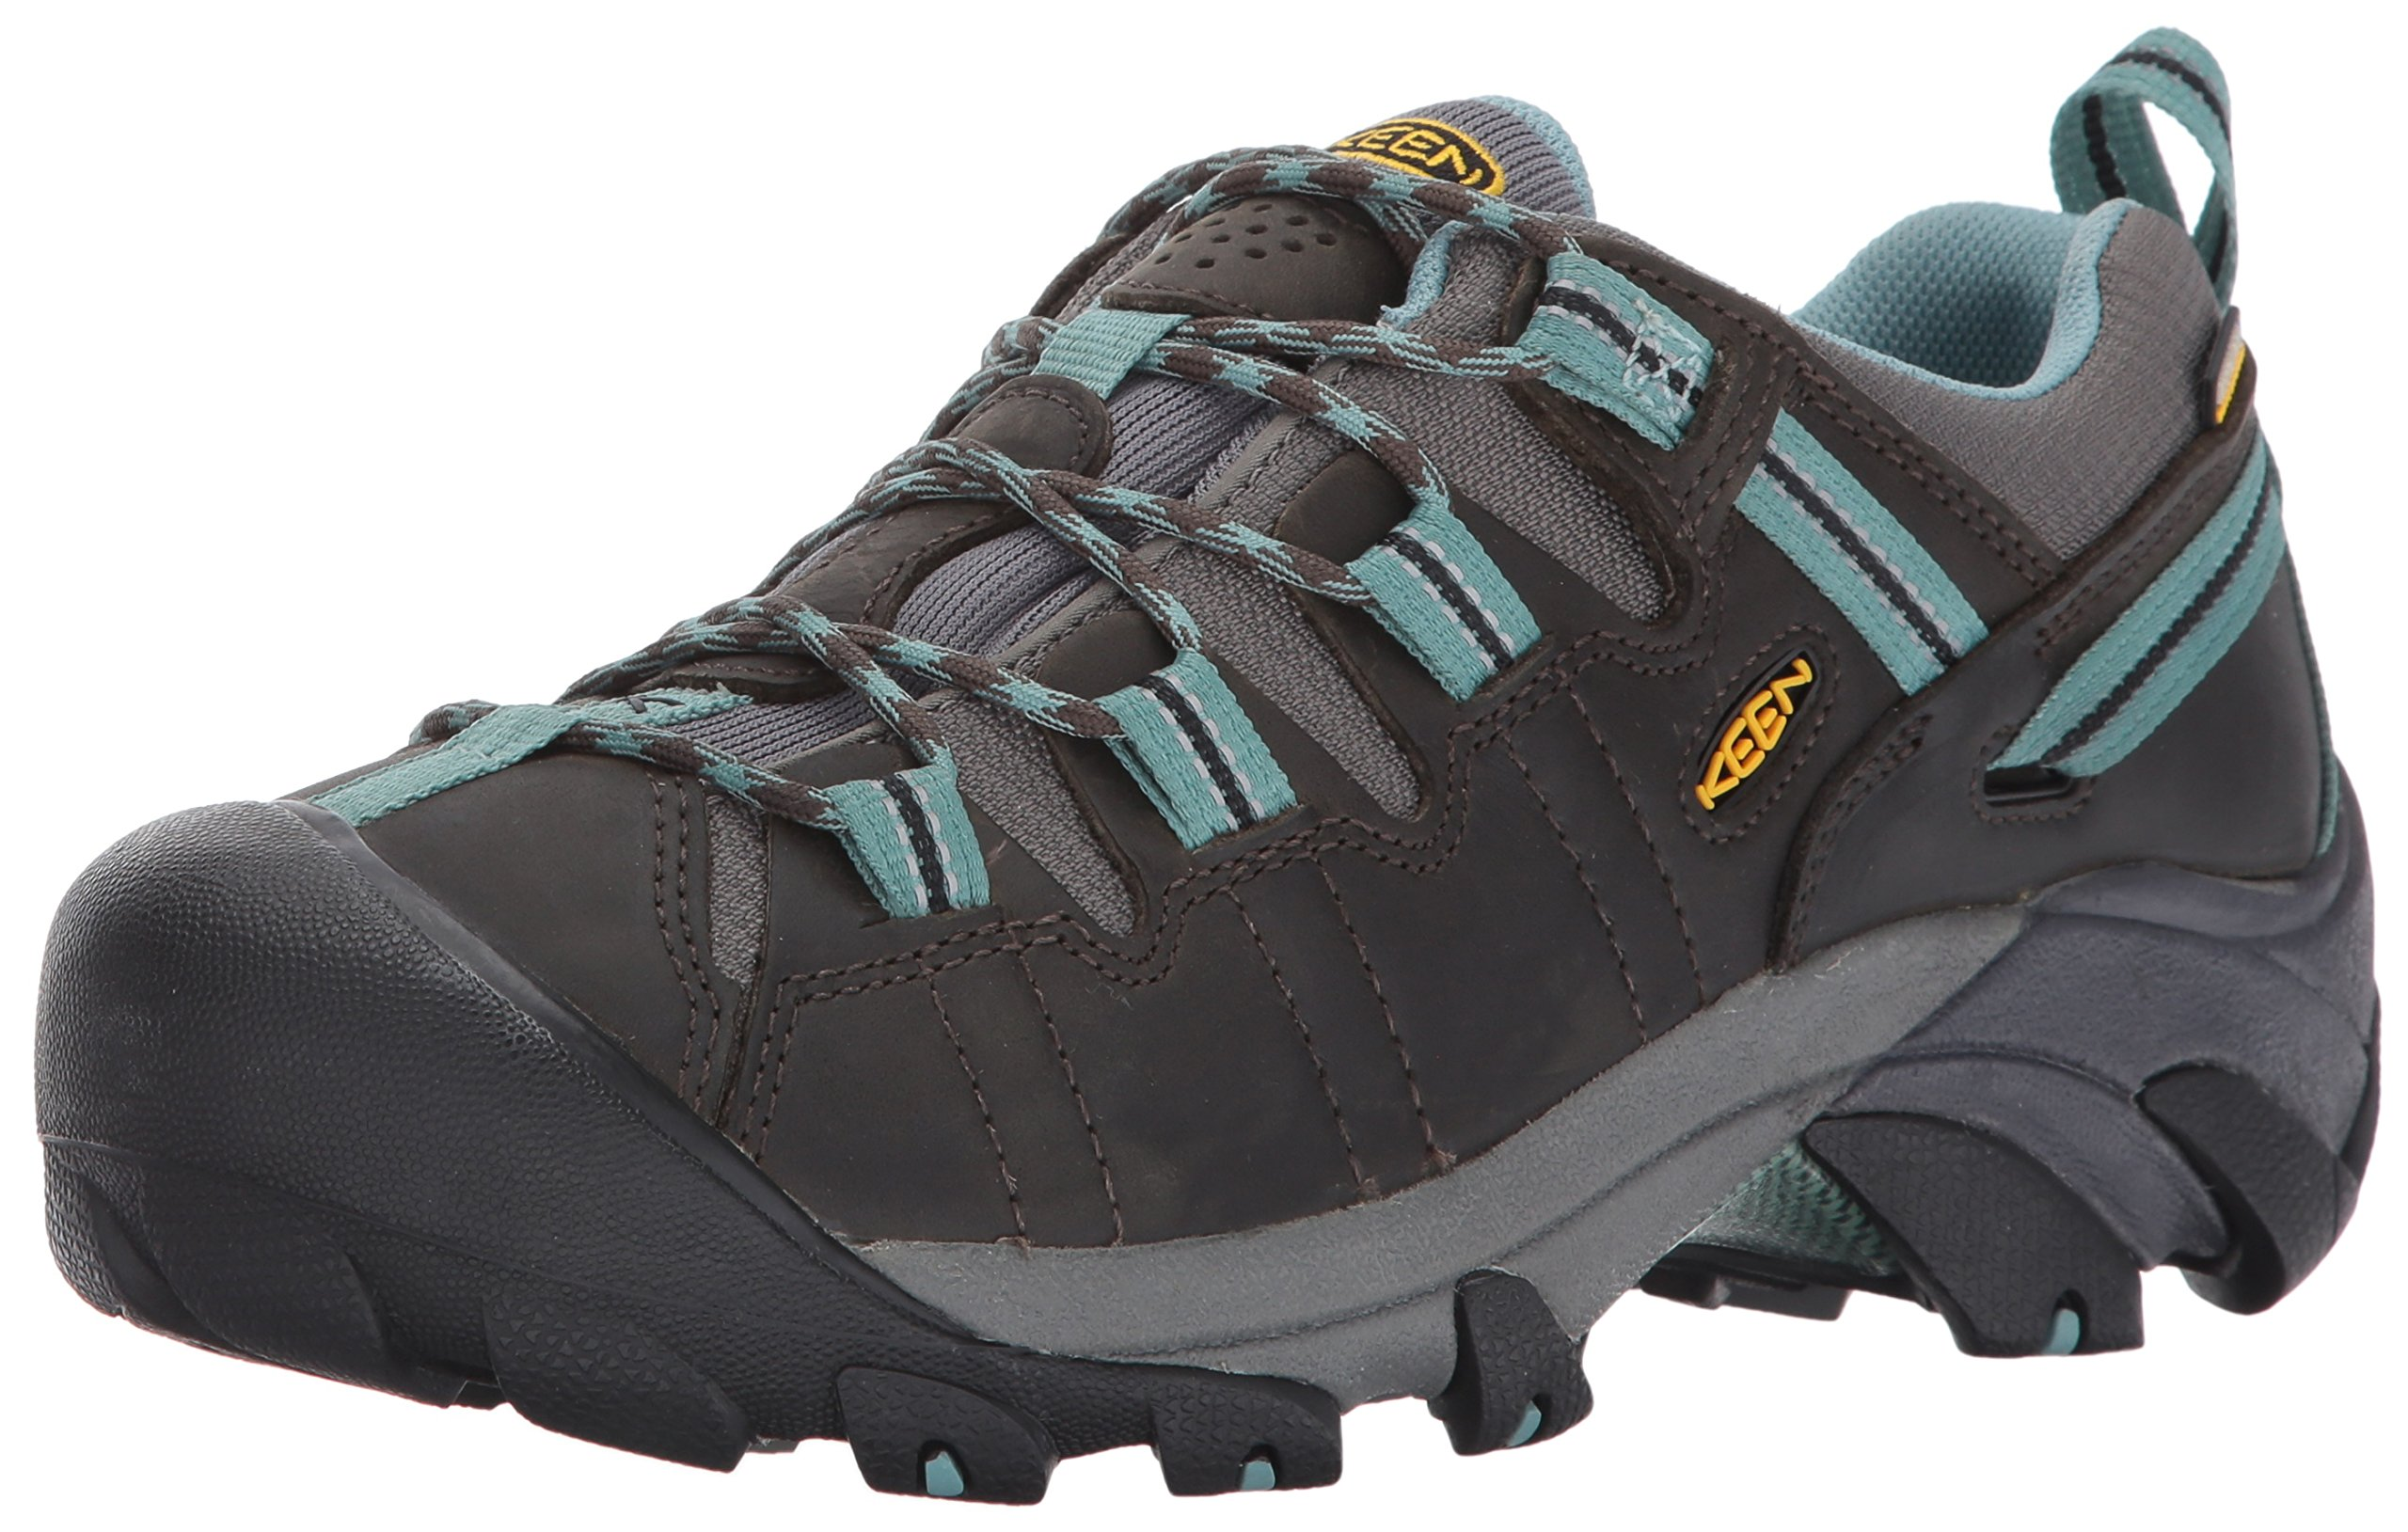 KEEN Women's Targhee II Outdoor Shoe, Black Olive/Mineral Blue, 10 M US by KEEN